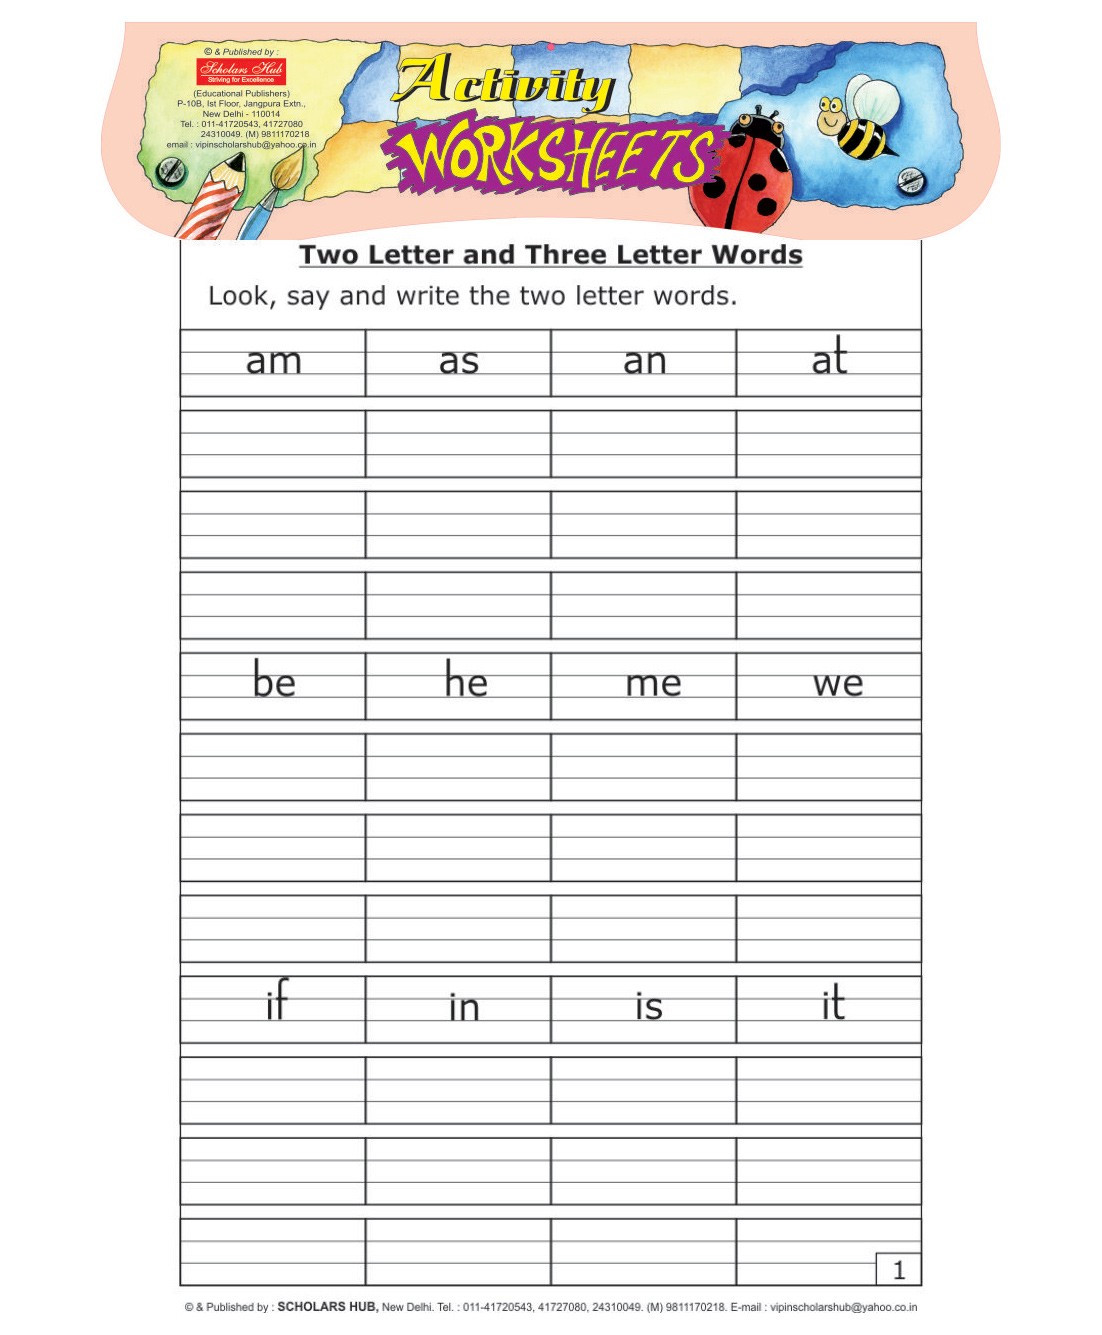 3 Letter Words Worksheet